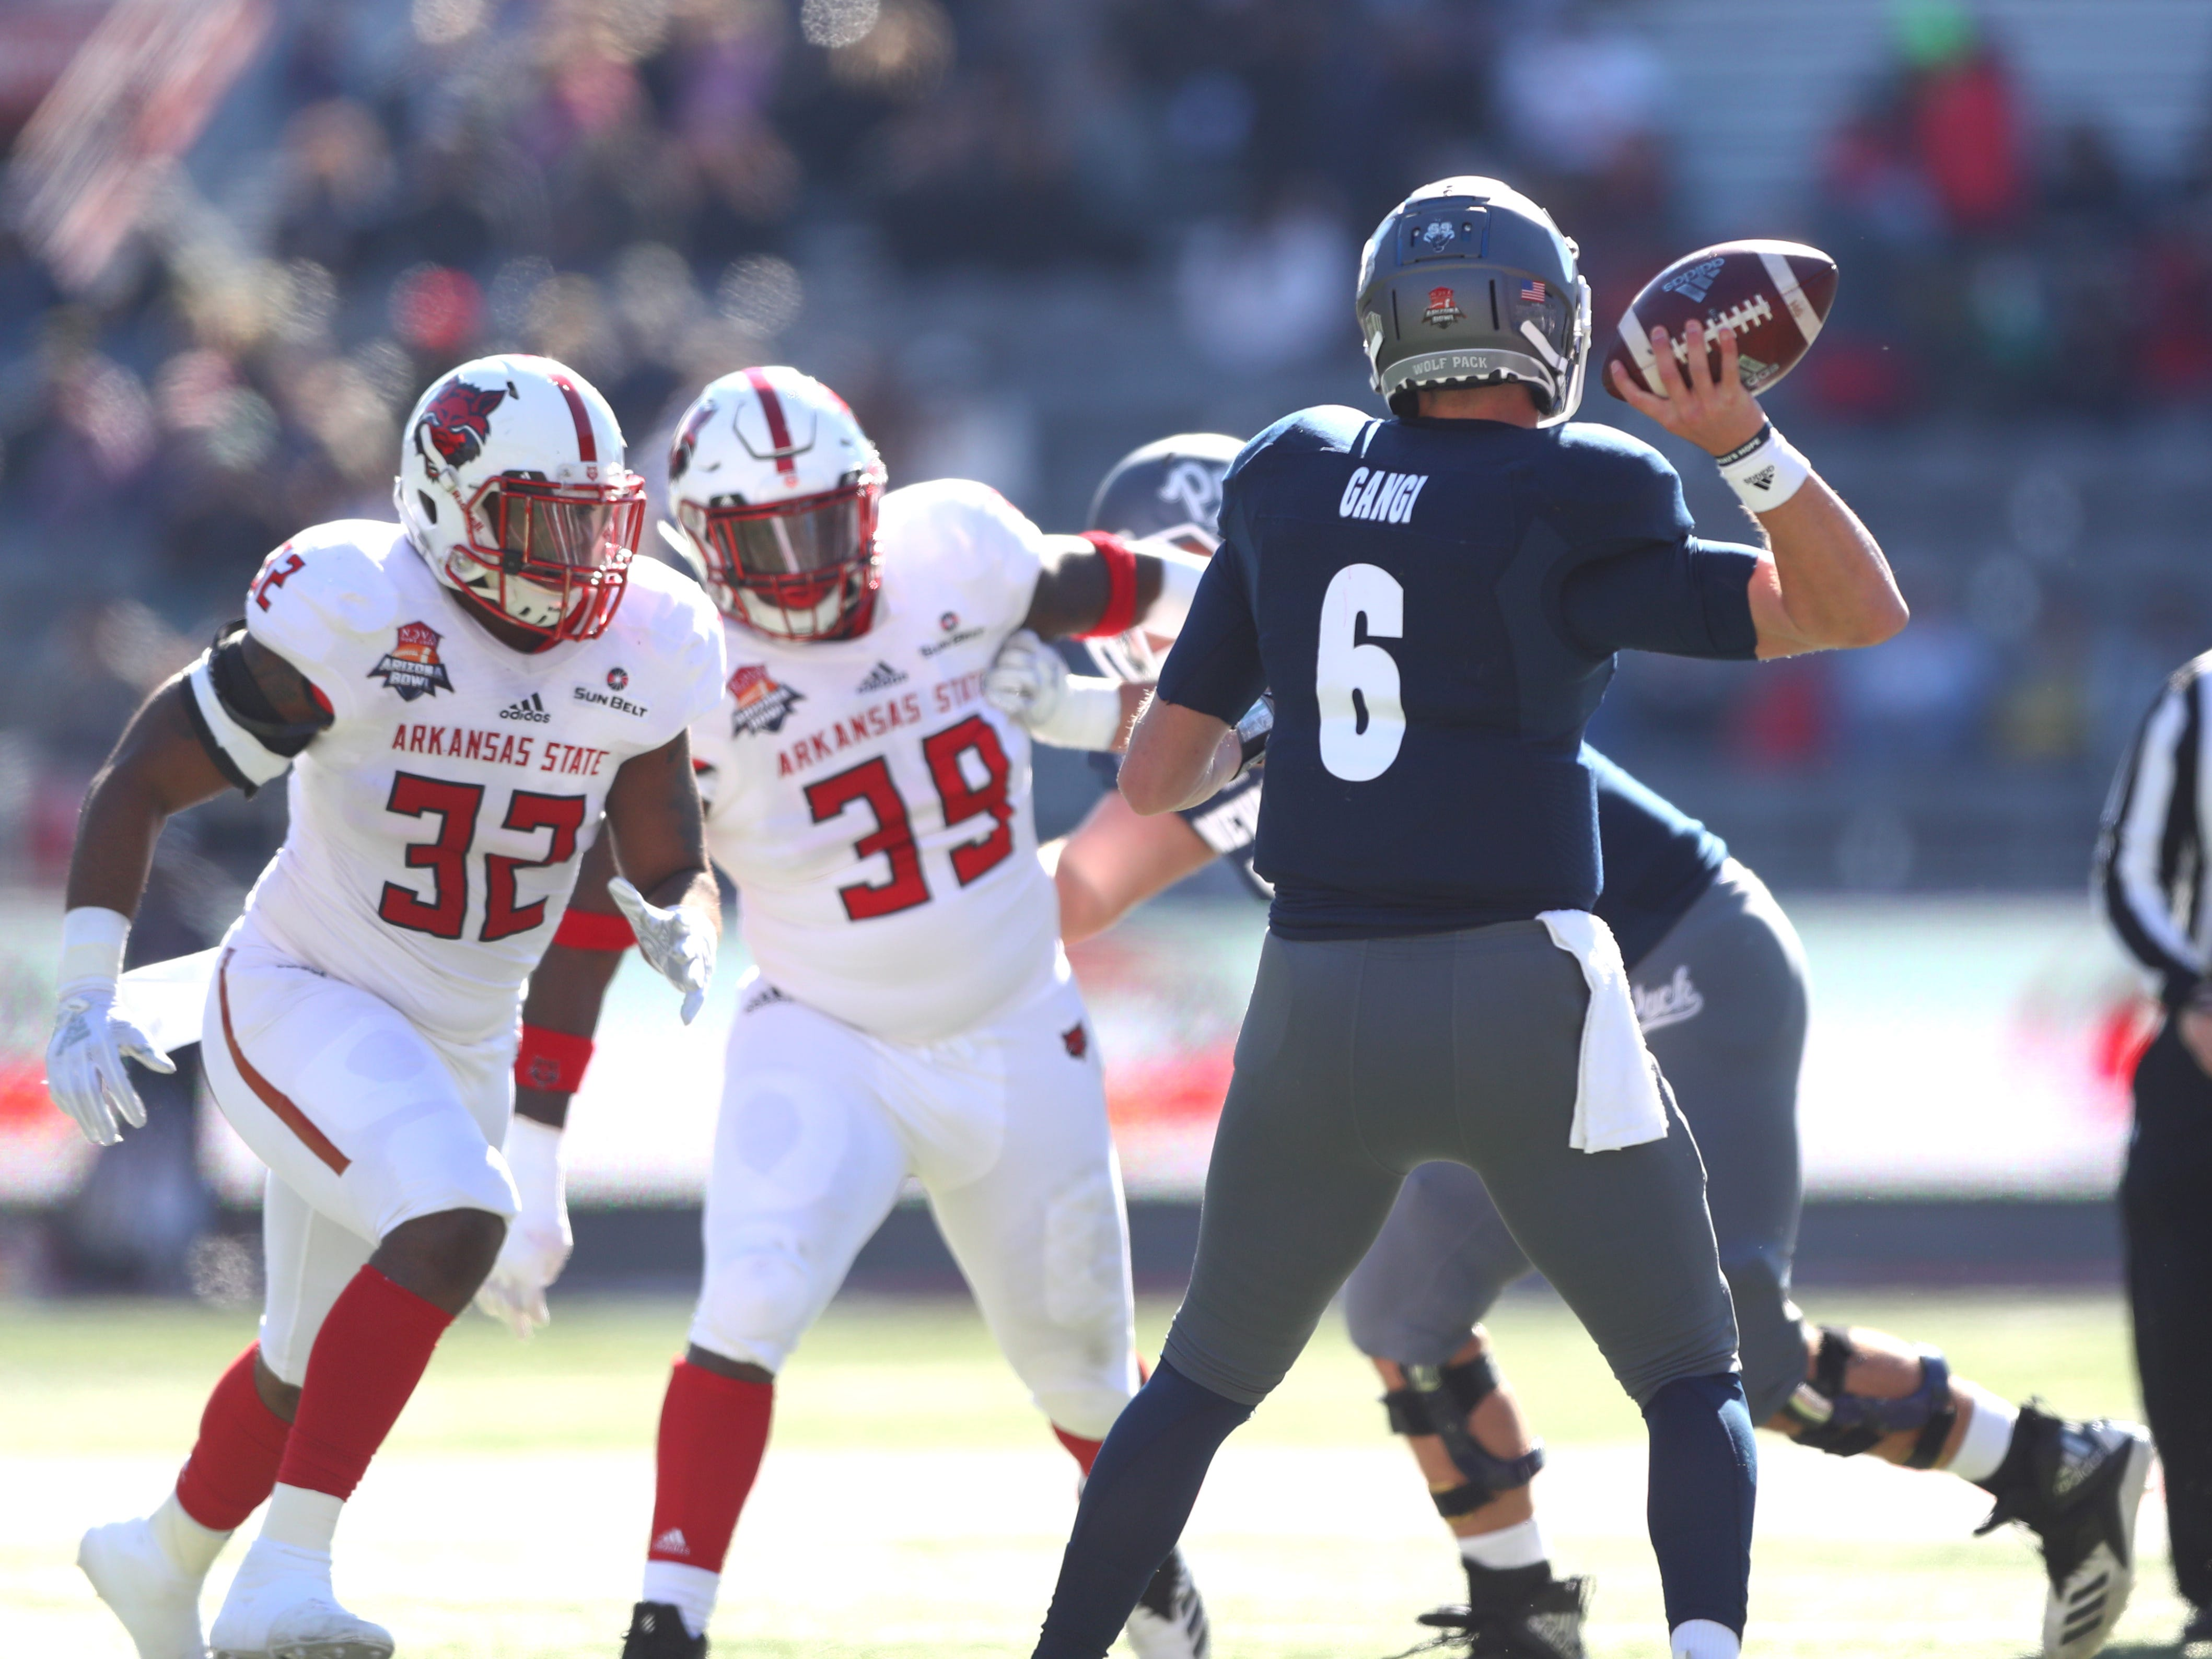 Dec 29, 2018; Tucson, AZ, USA; Nevada Wolf Pack quarterback Ty Gangi (6) against the Arkansas State Red Wolves in the first half of the 2018 Arizona Bowl at Arizona Stadium.